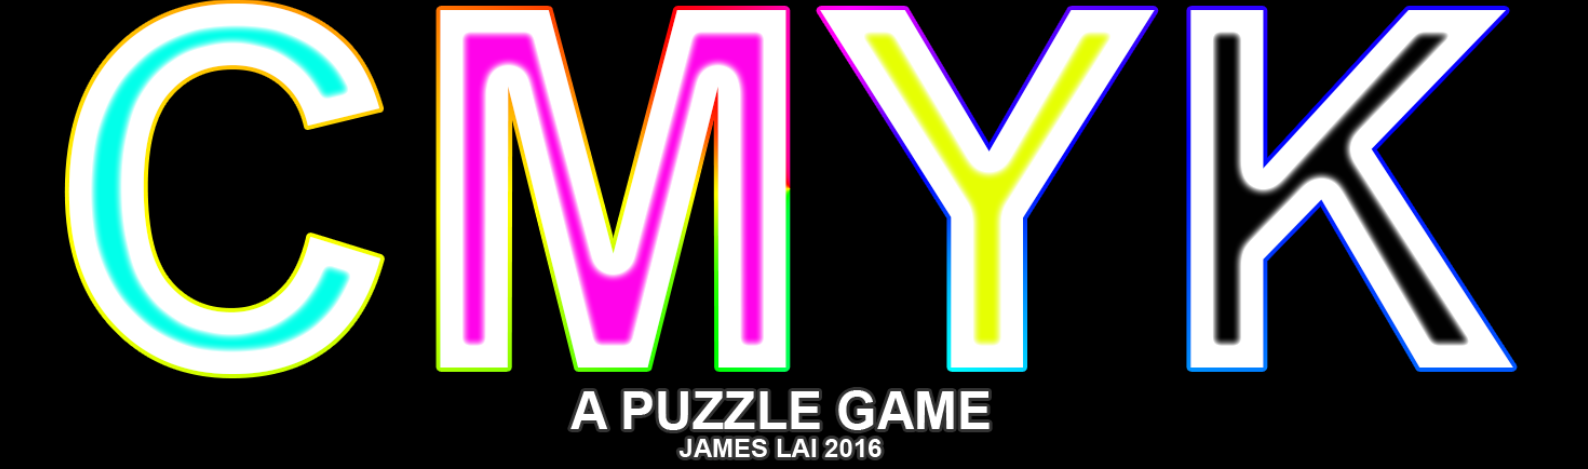 CMYK: A Puzzle Game